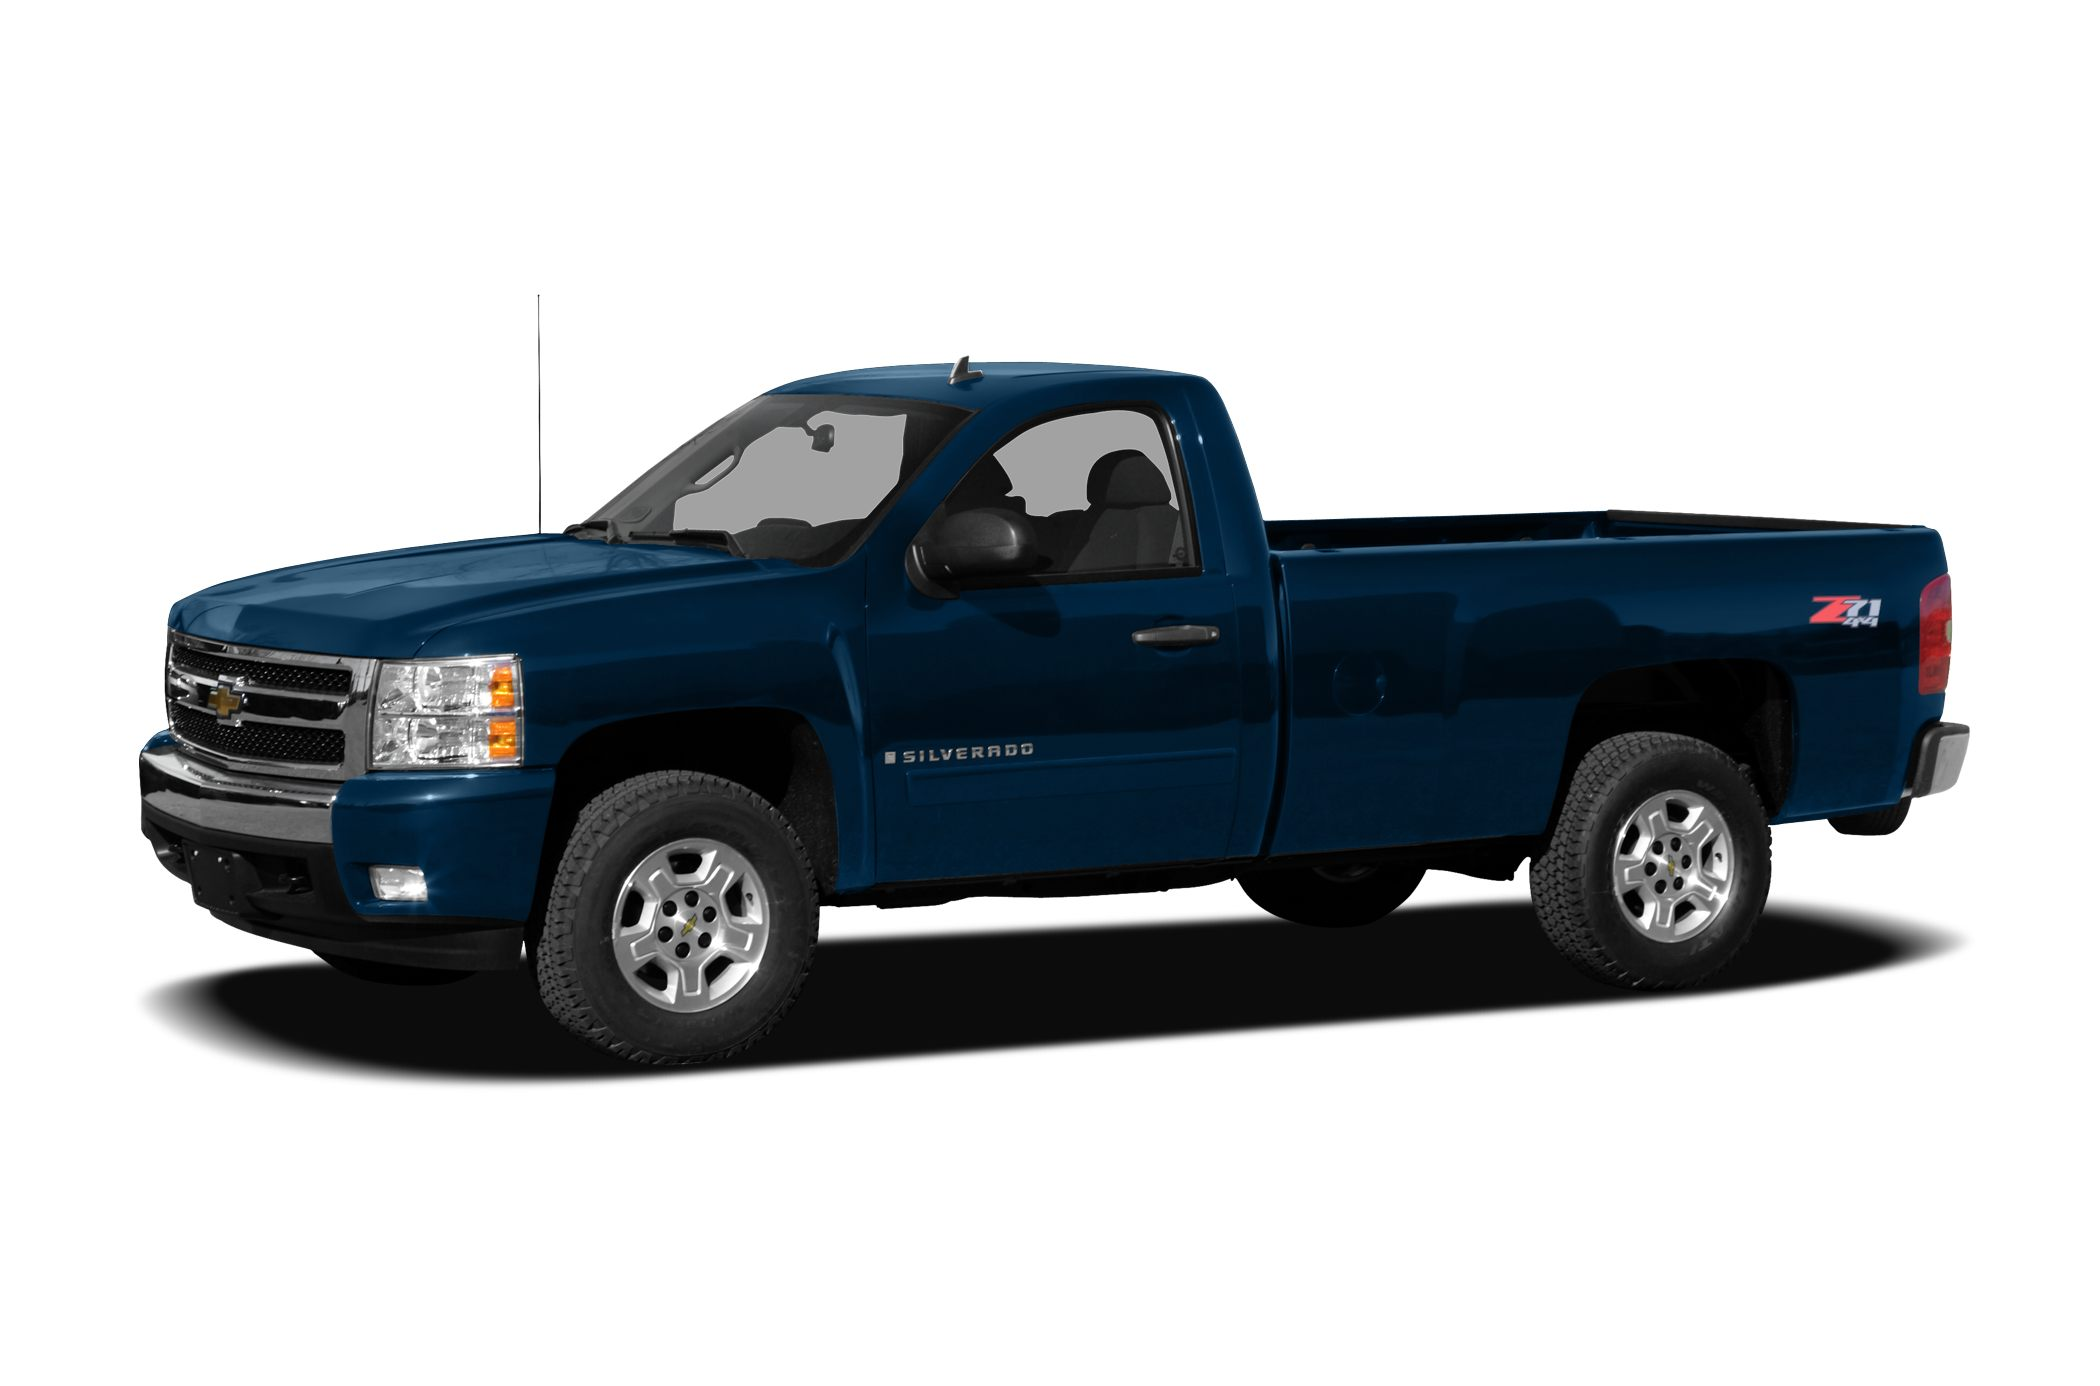 sb andrew silverado wheelwell harding chevrolet ltz crew cab s on large ft